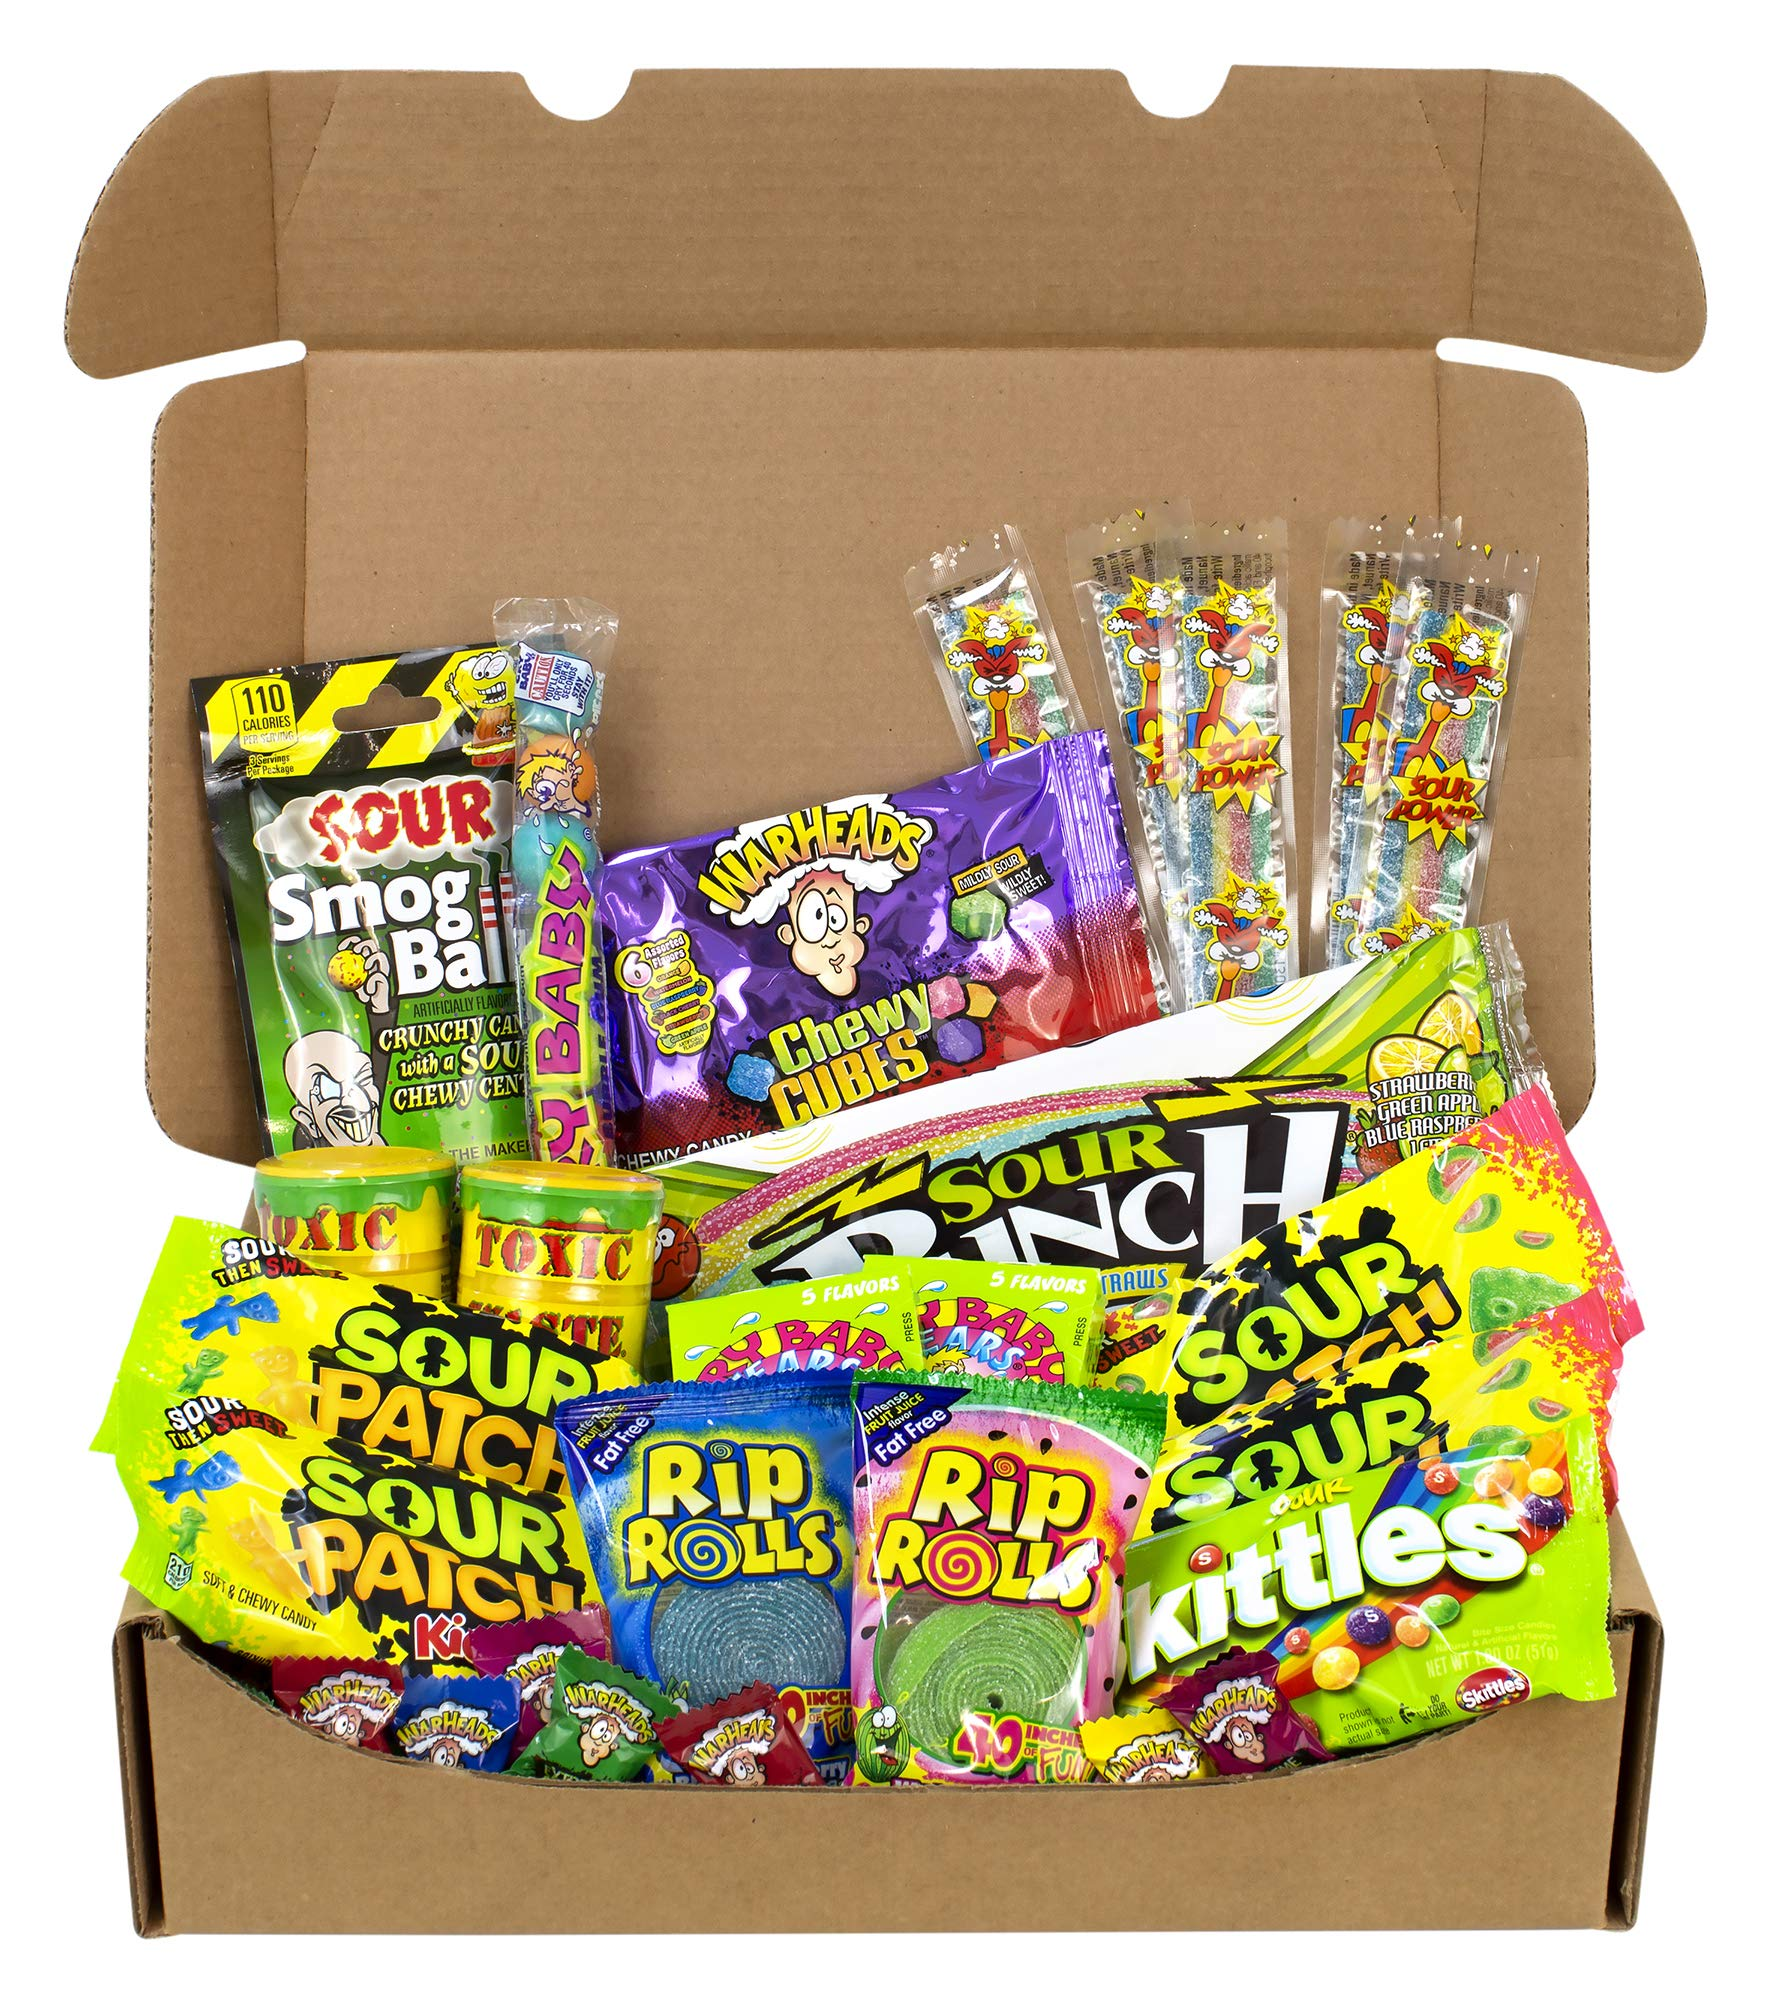 The Ultimate Variety Sour Box - 30 Piece Assortment Of The Worlds Most Sour Candy by Cyber Sweetz